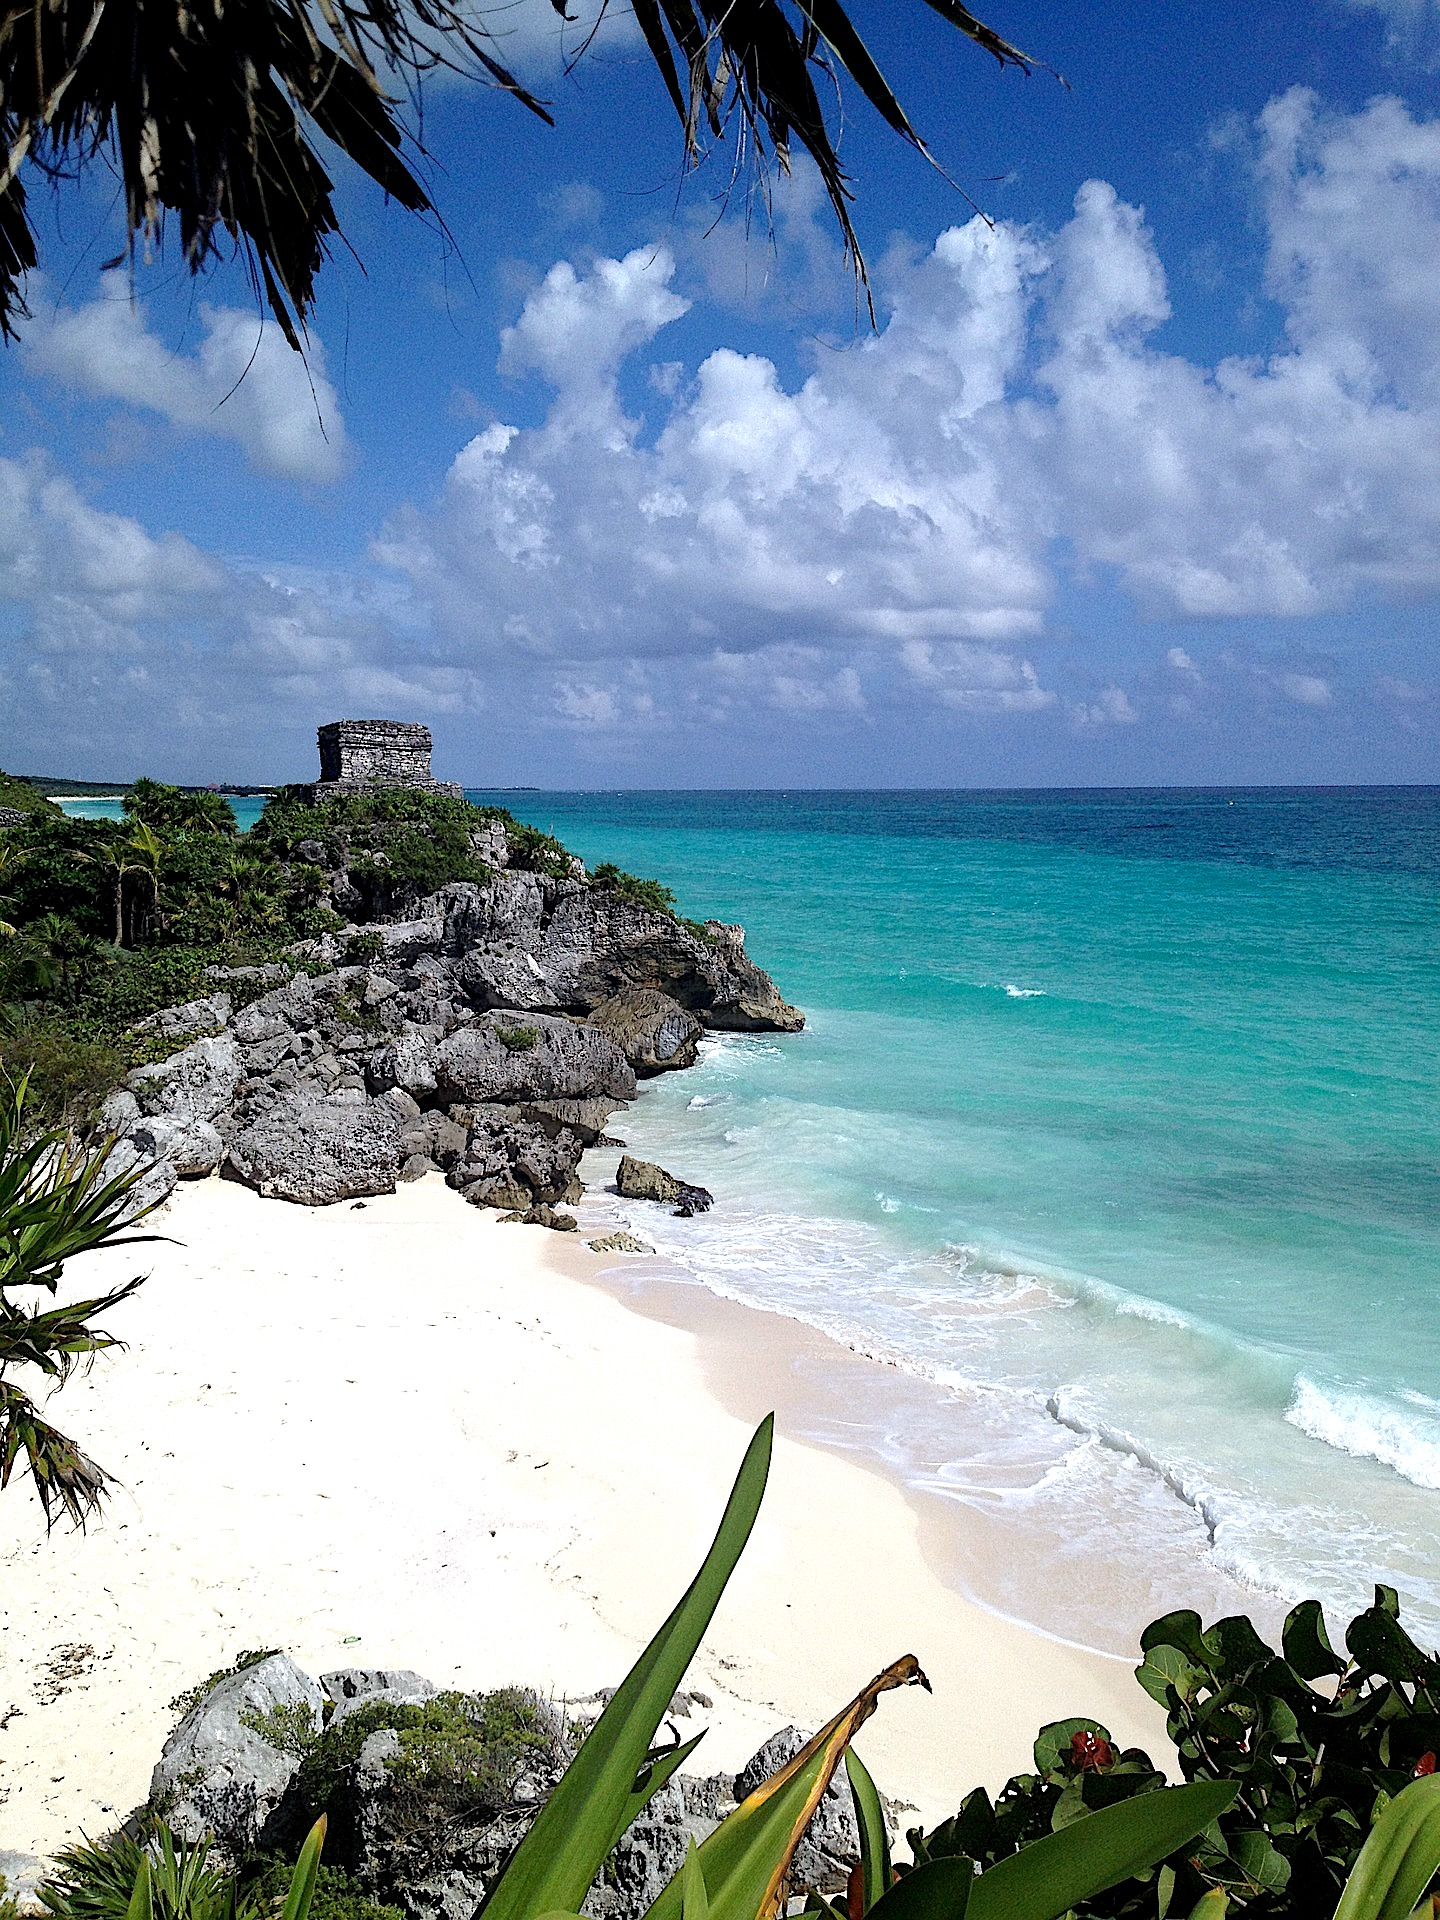 Tulum Ruins and the Caribbean Sea. Find the complete Tulum travel guide on www.ayewanderful.com.